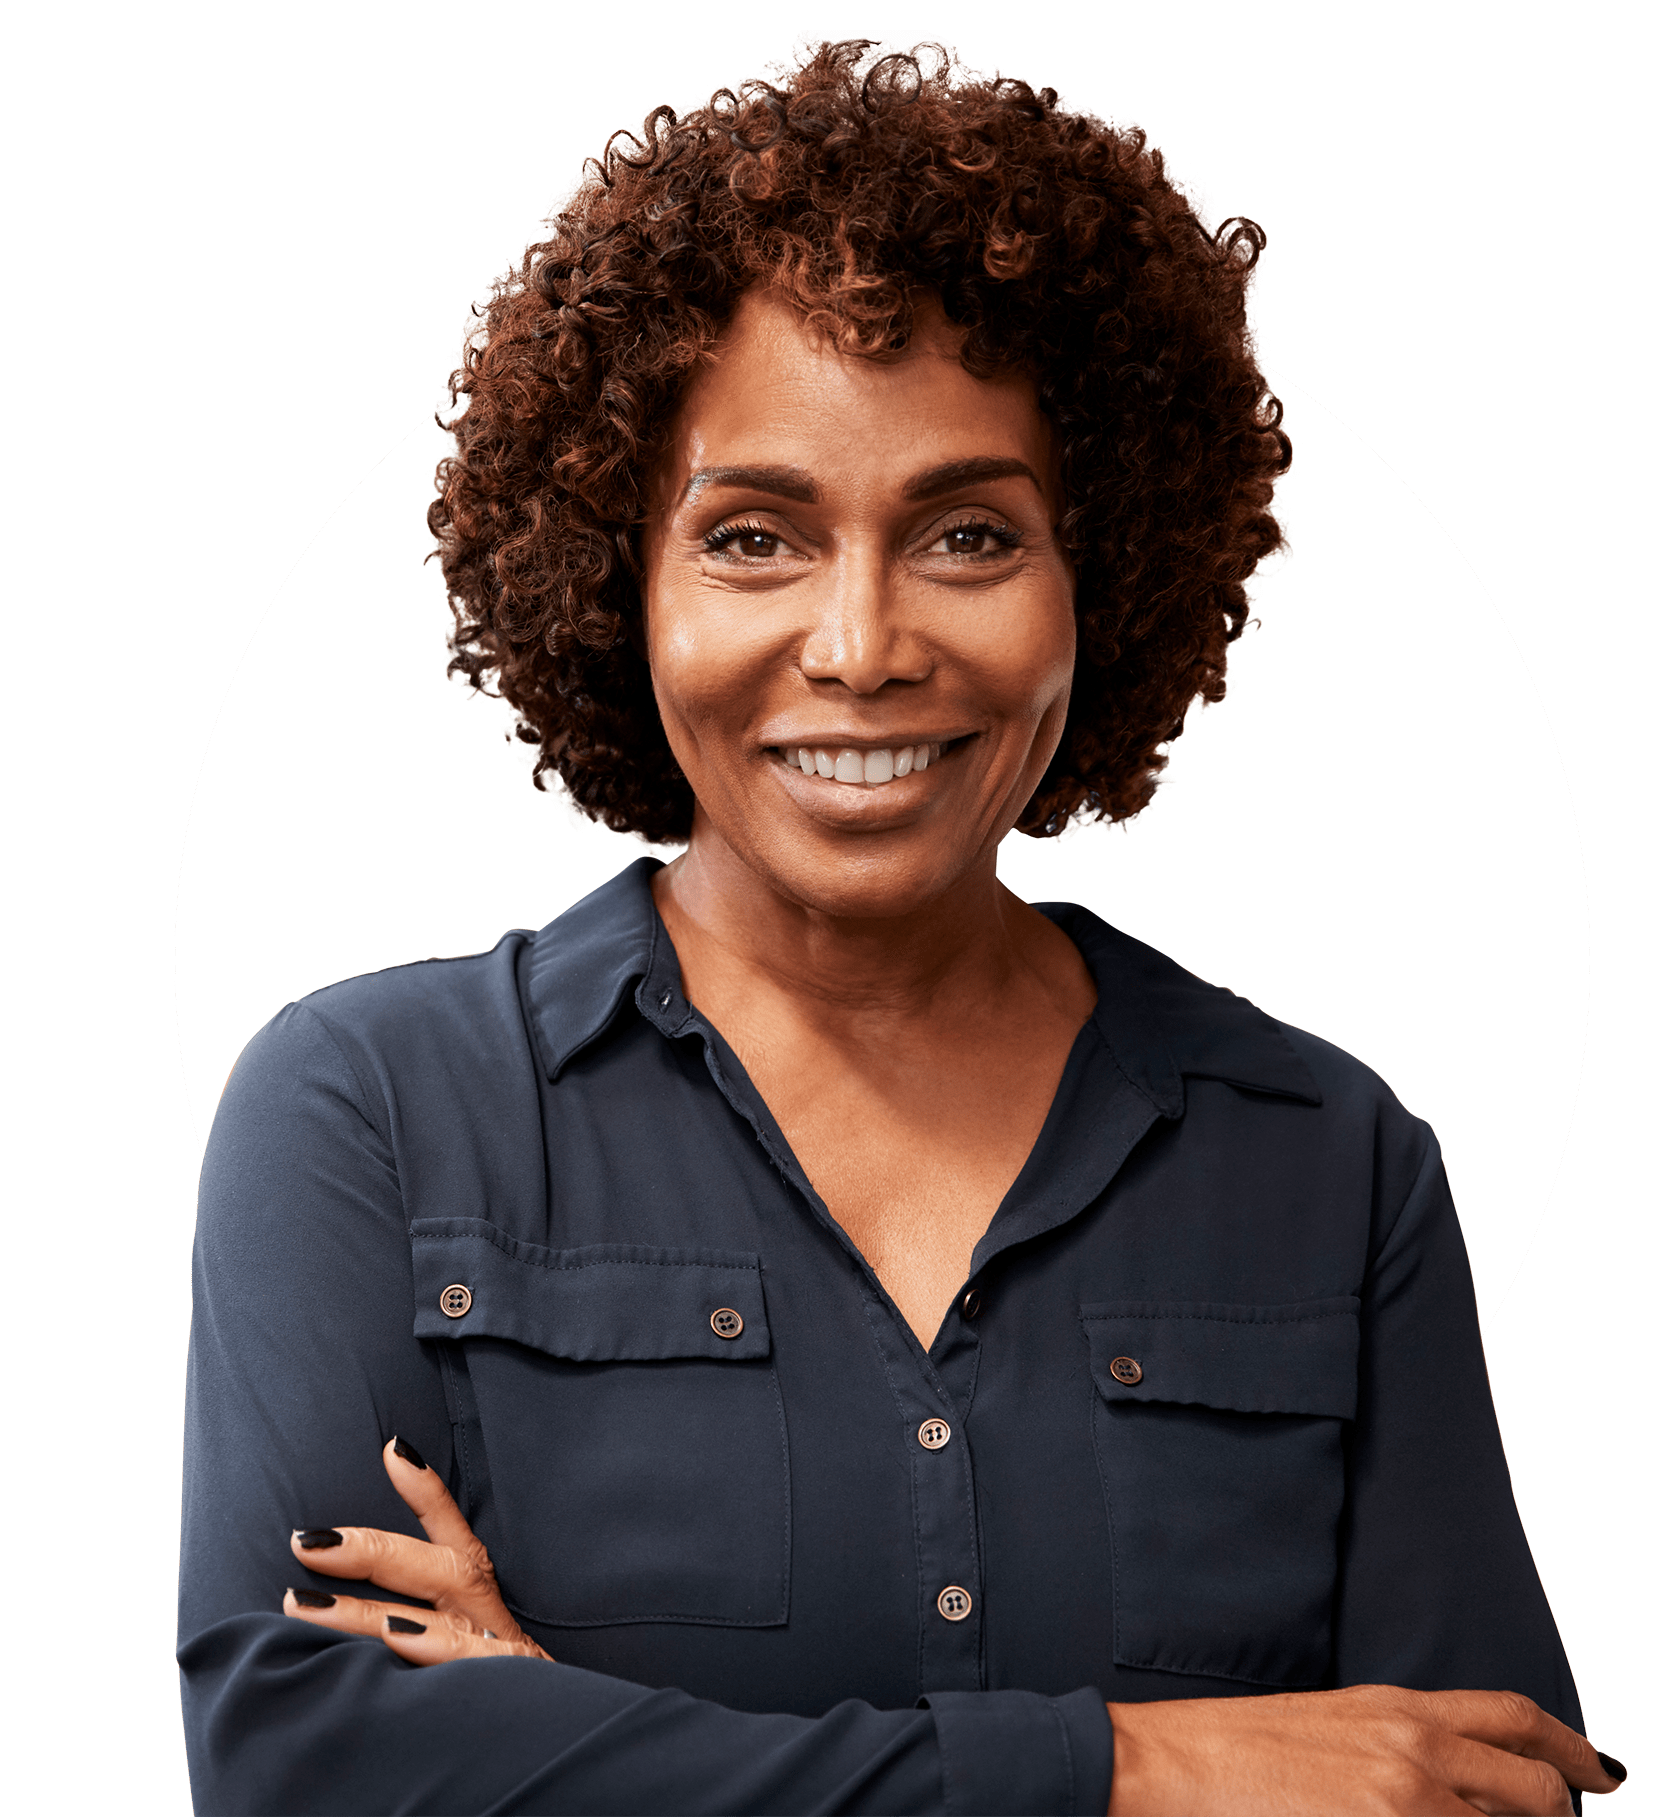 picture of a woman smiling with her arms crossed